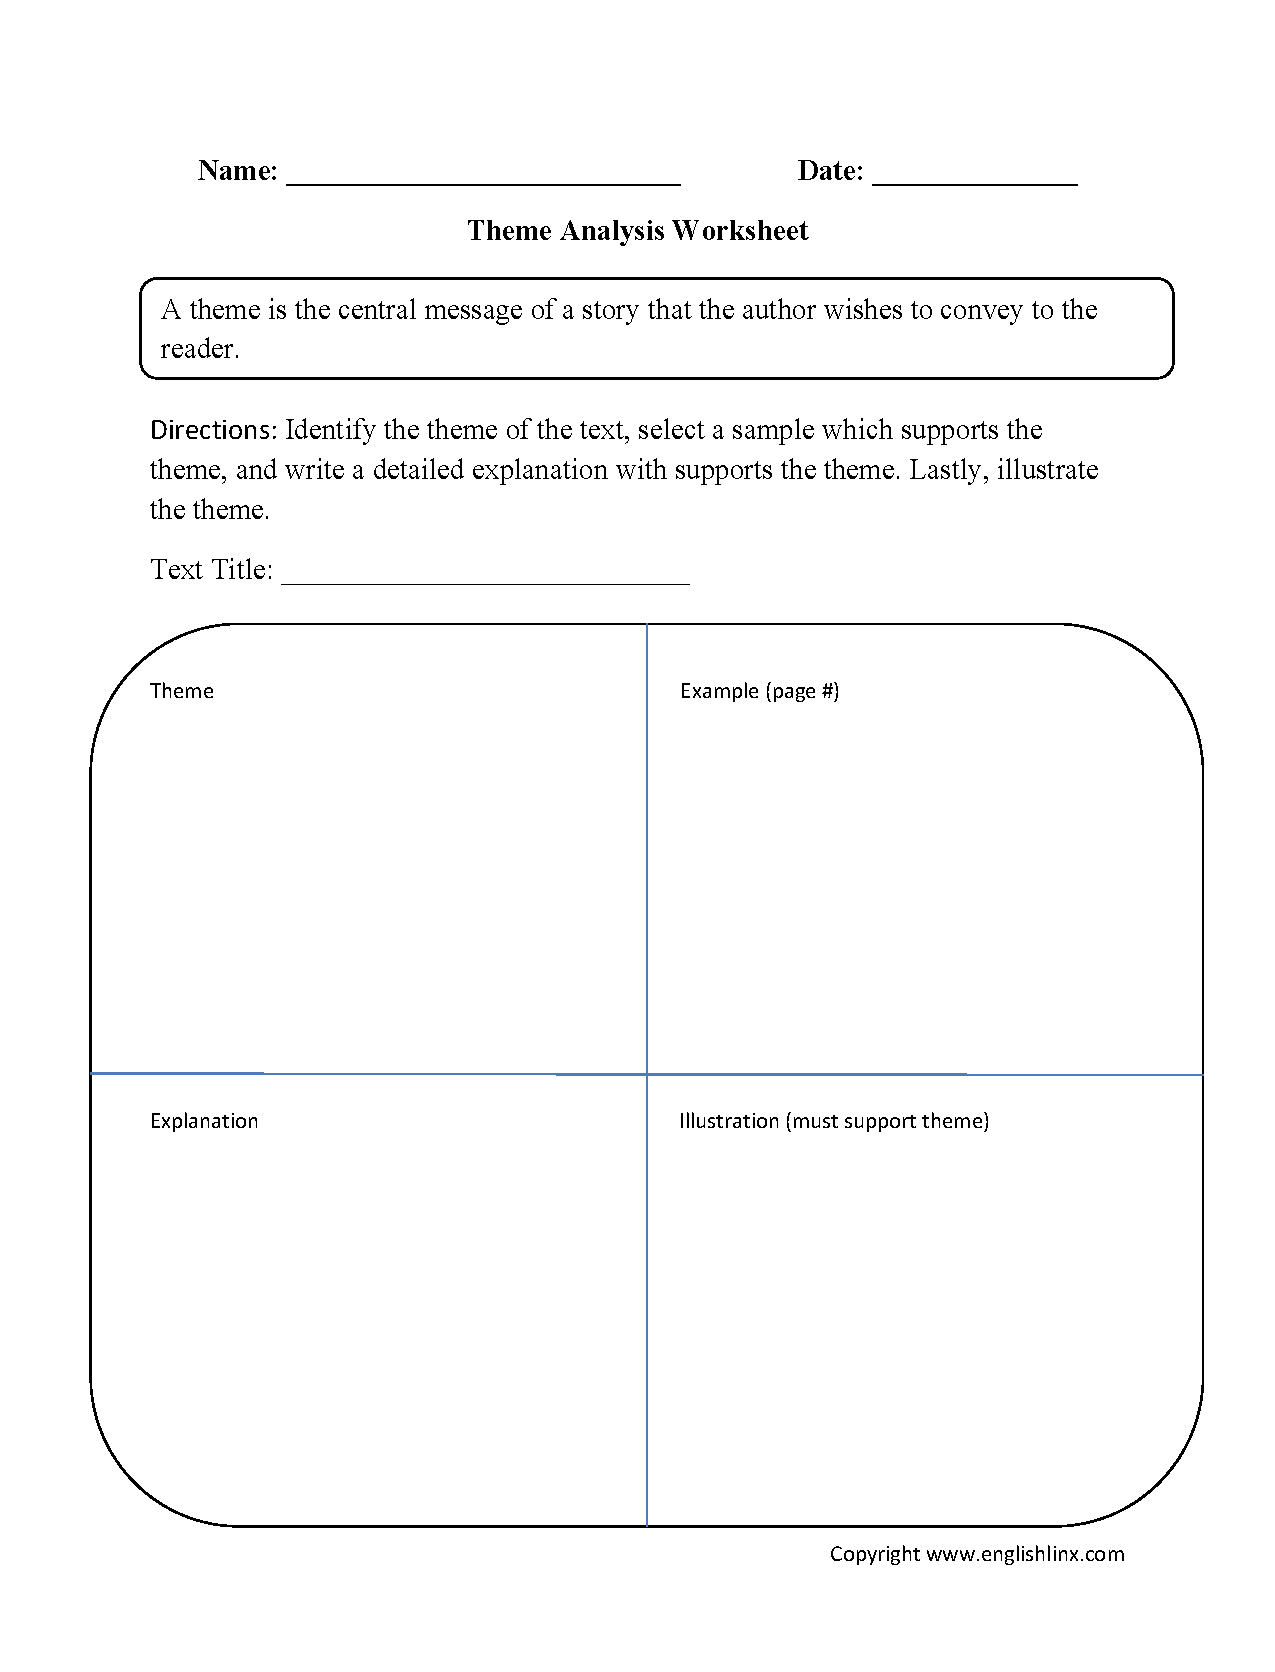 Theme Analysis Worksheet Education Language Arts – Theme Worksheets Middle School